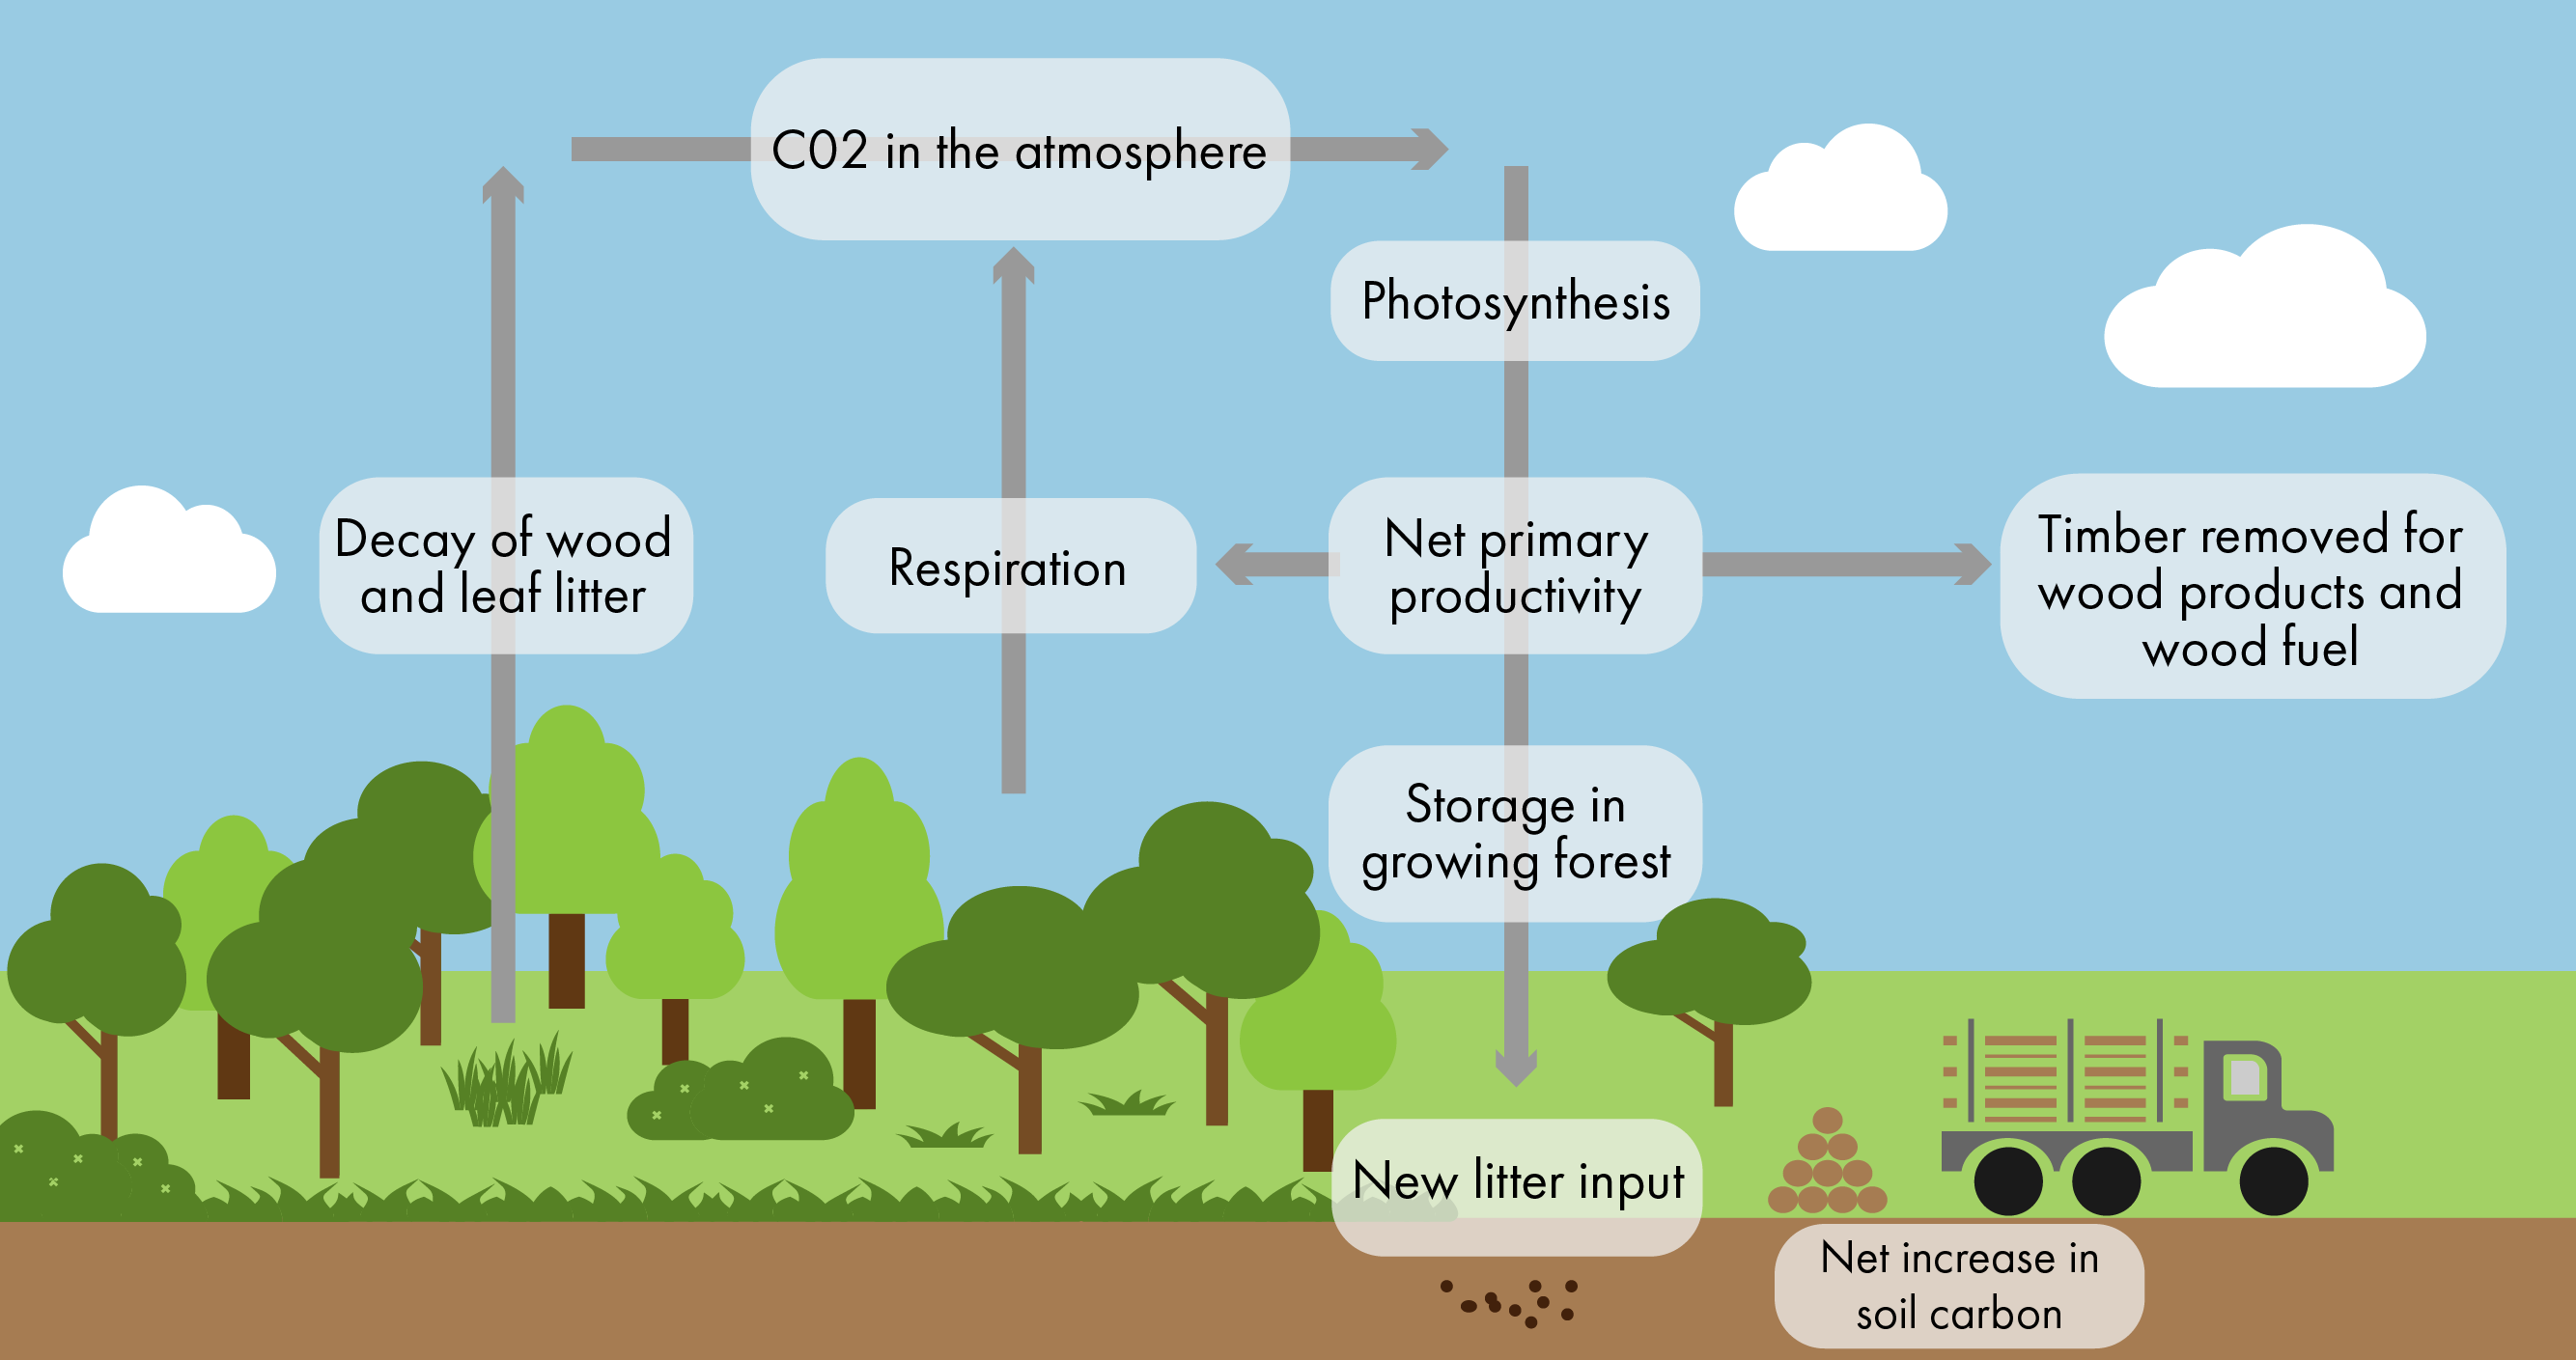 Trees can remove CO2 from the atmosphere and store it. The stored CO2 can later be released either through decaying biomass as litter (foliage, deadwood etc.) or absorbed in the soil